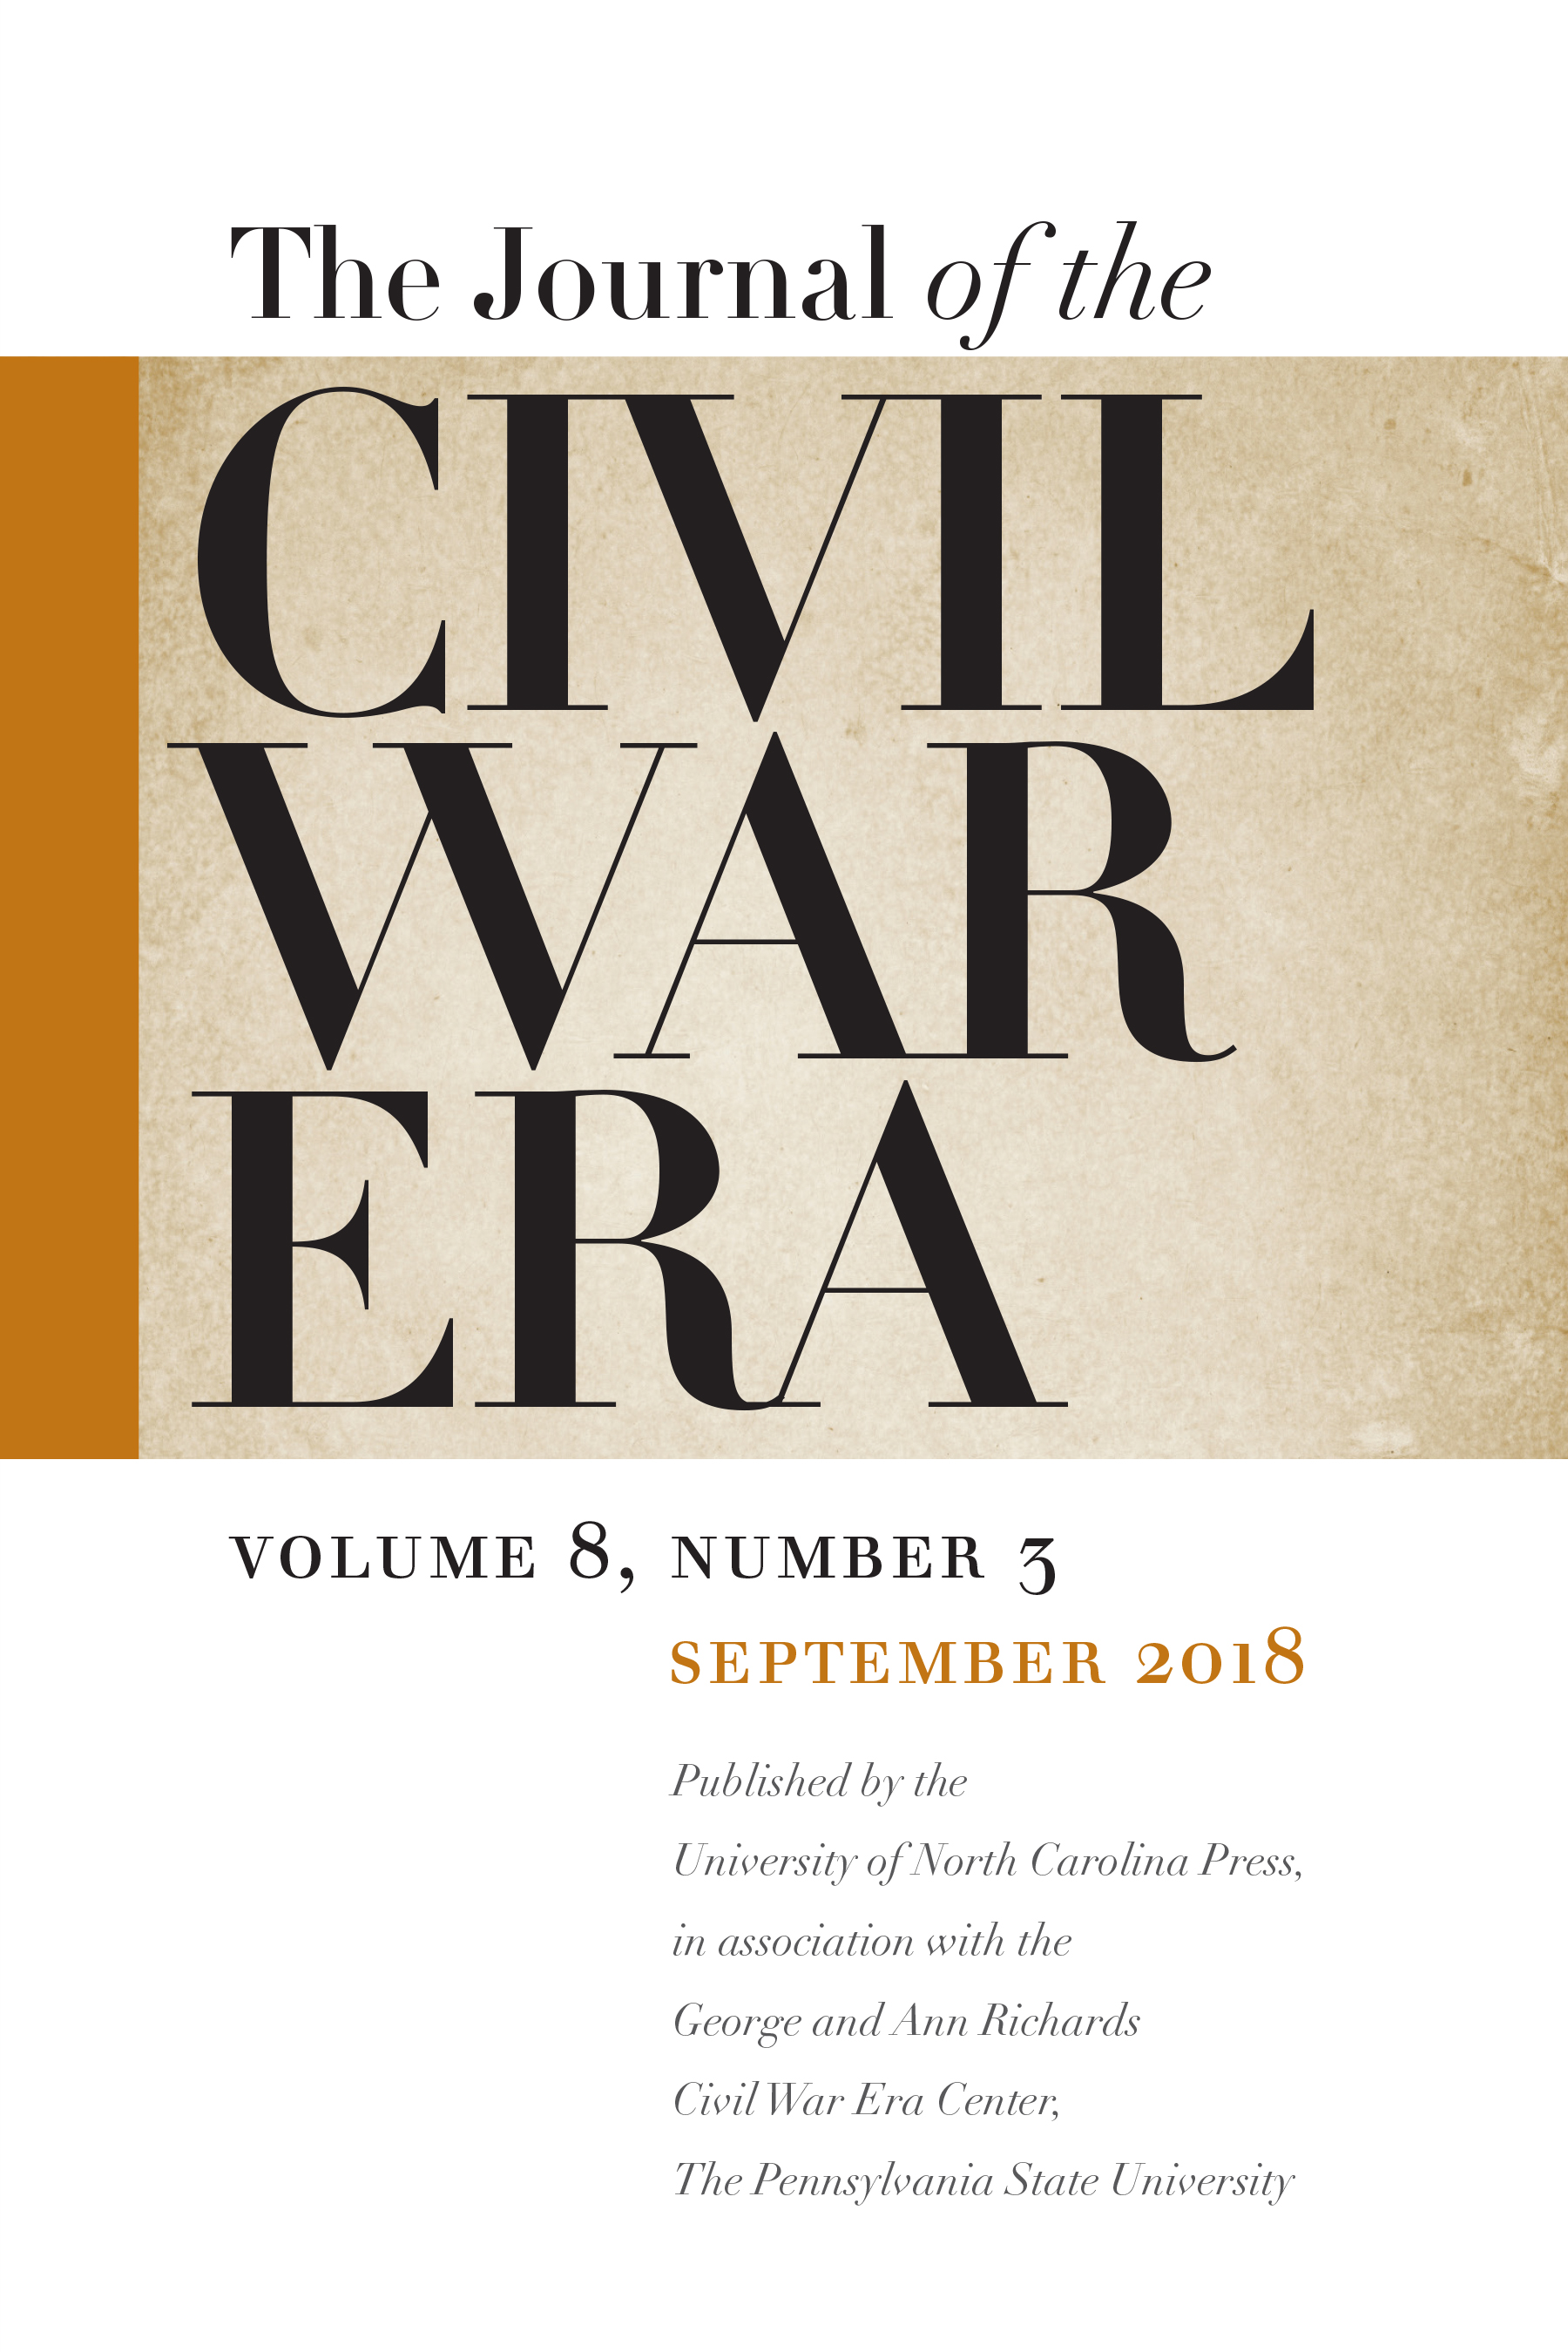 The Journal of the Civil War Era, vol. 8 no. 3, September 2018